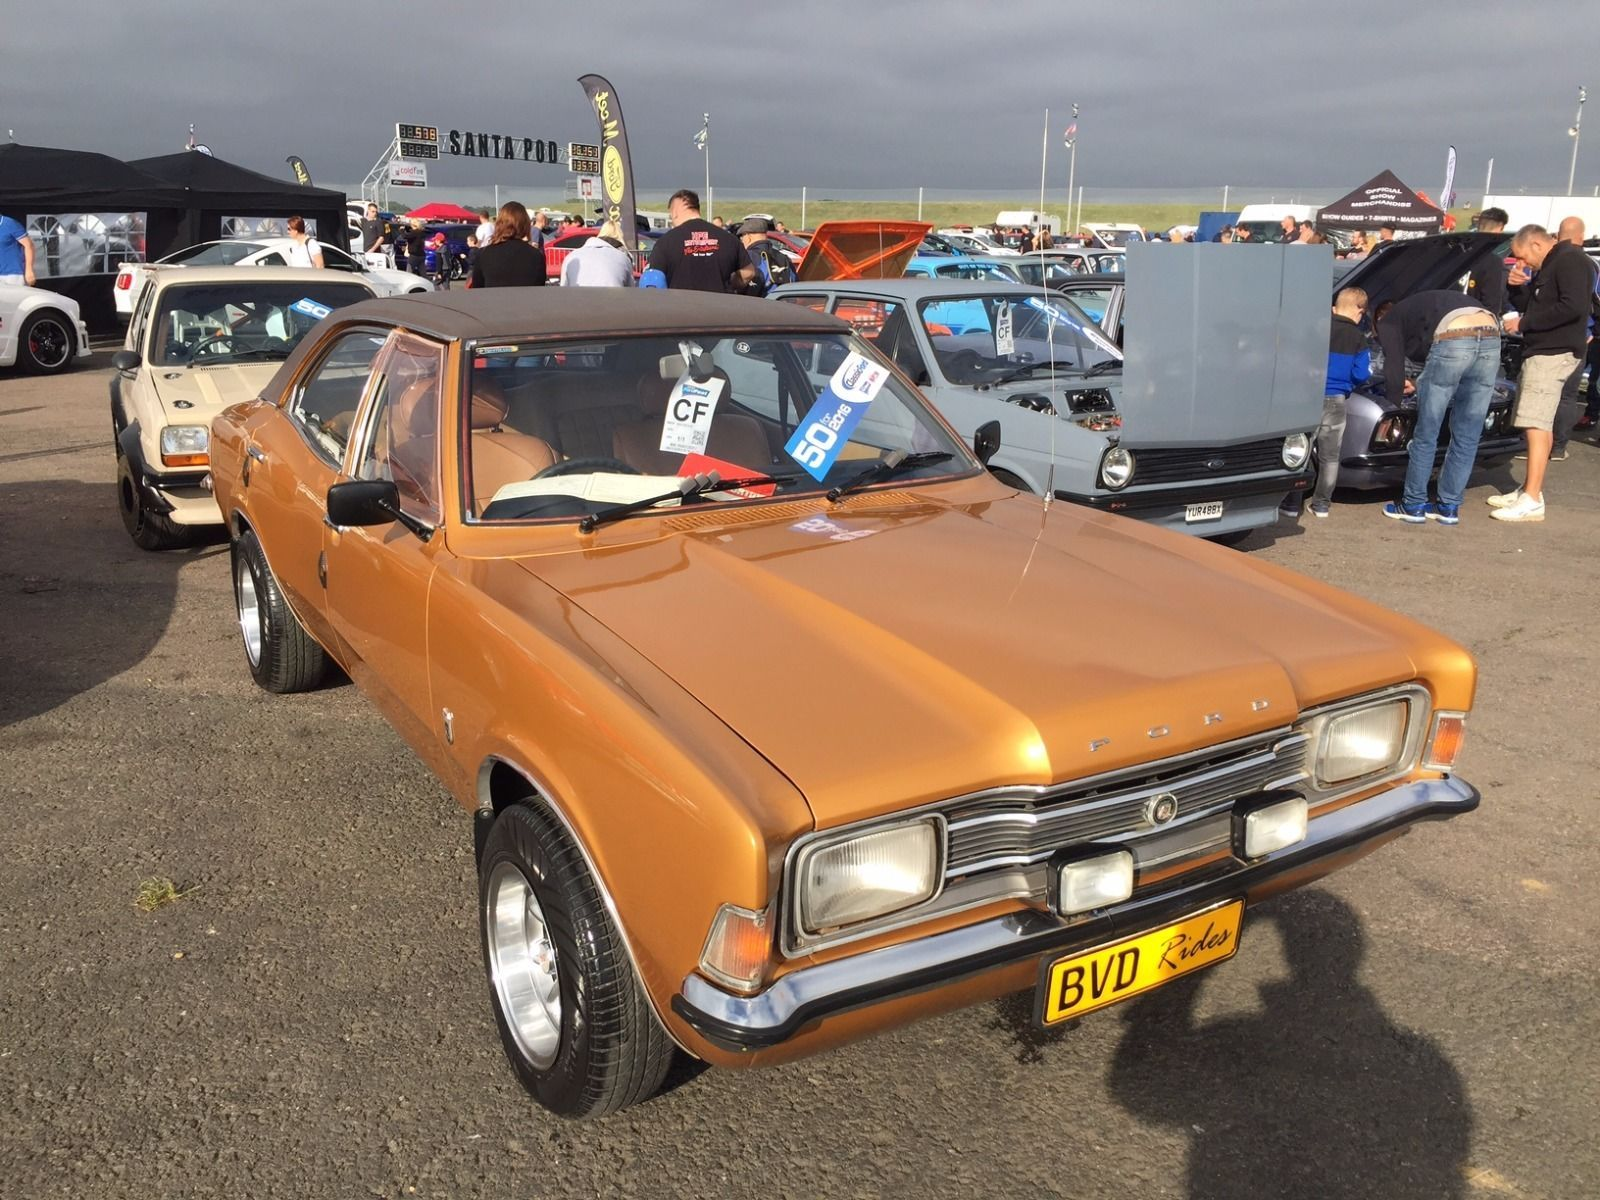 Ford Cortina 3 0 V6 Xle Mk3 1976 Ultra Rare Ebay Ford